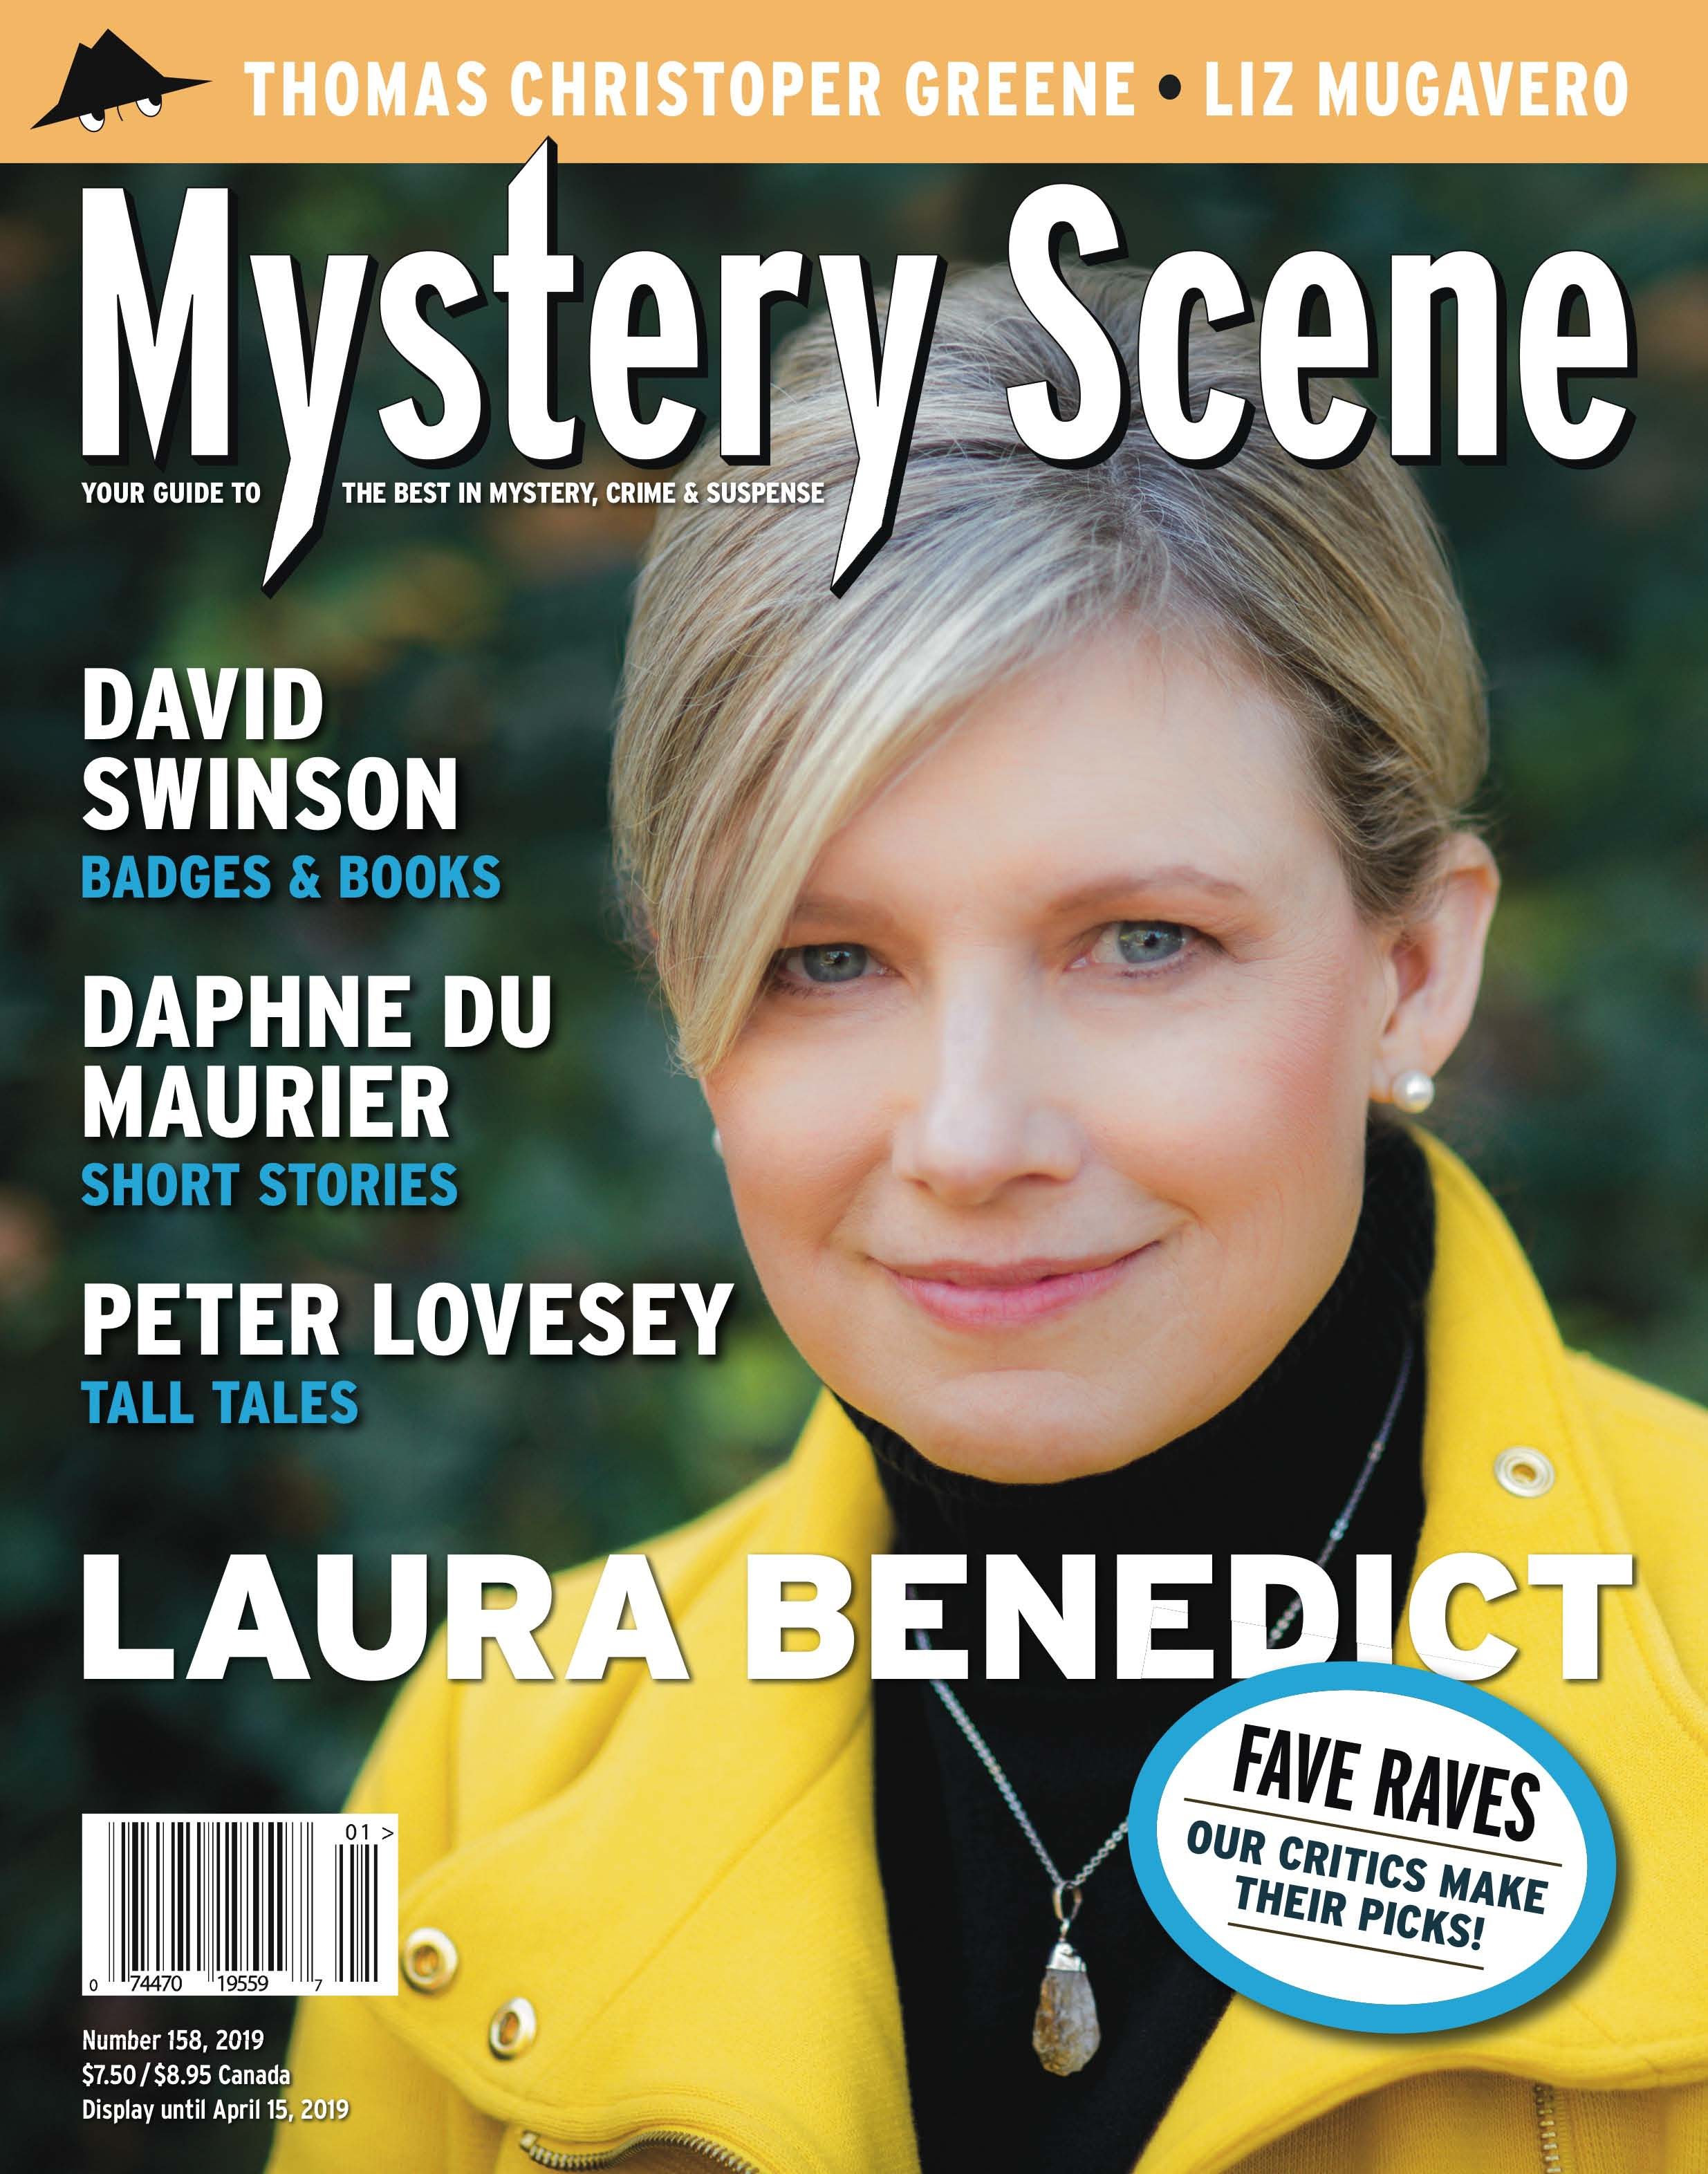 158 Winter cover, Laura Benedict